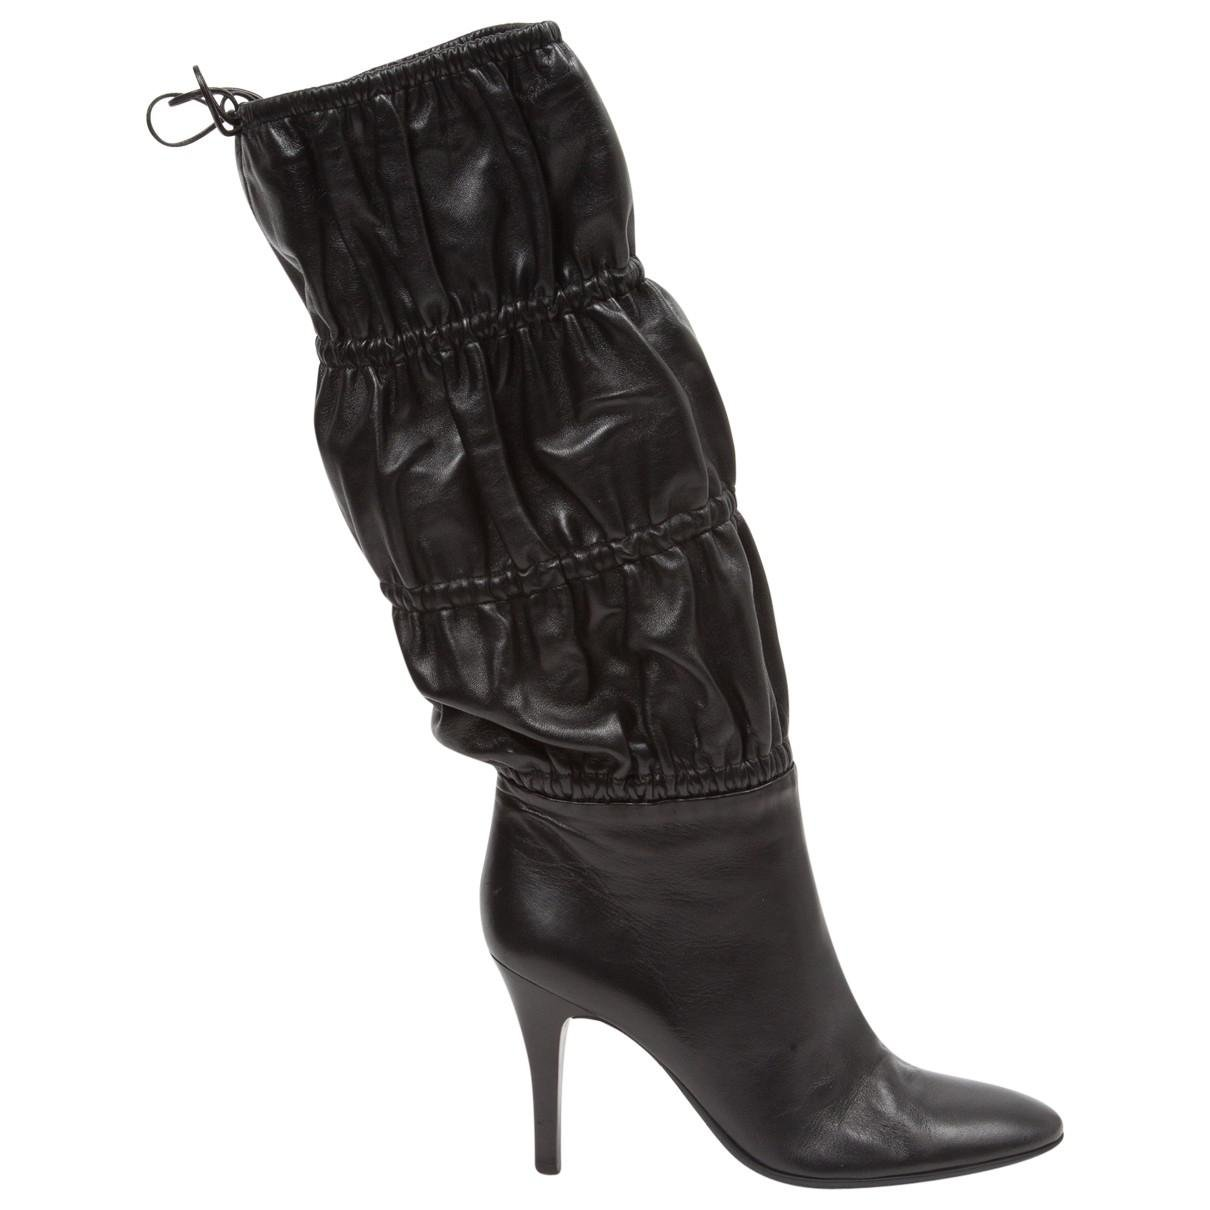 Cheap Sale New Pre-owned - Leather boots Roberto Cavalli Find Great 2018 Unisex Sale Online Cheap Fashion Style Discounts VSrQs